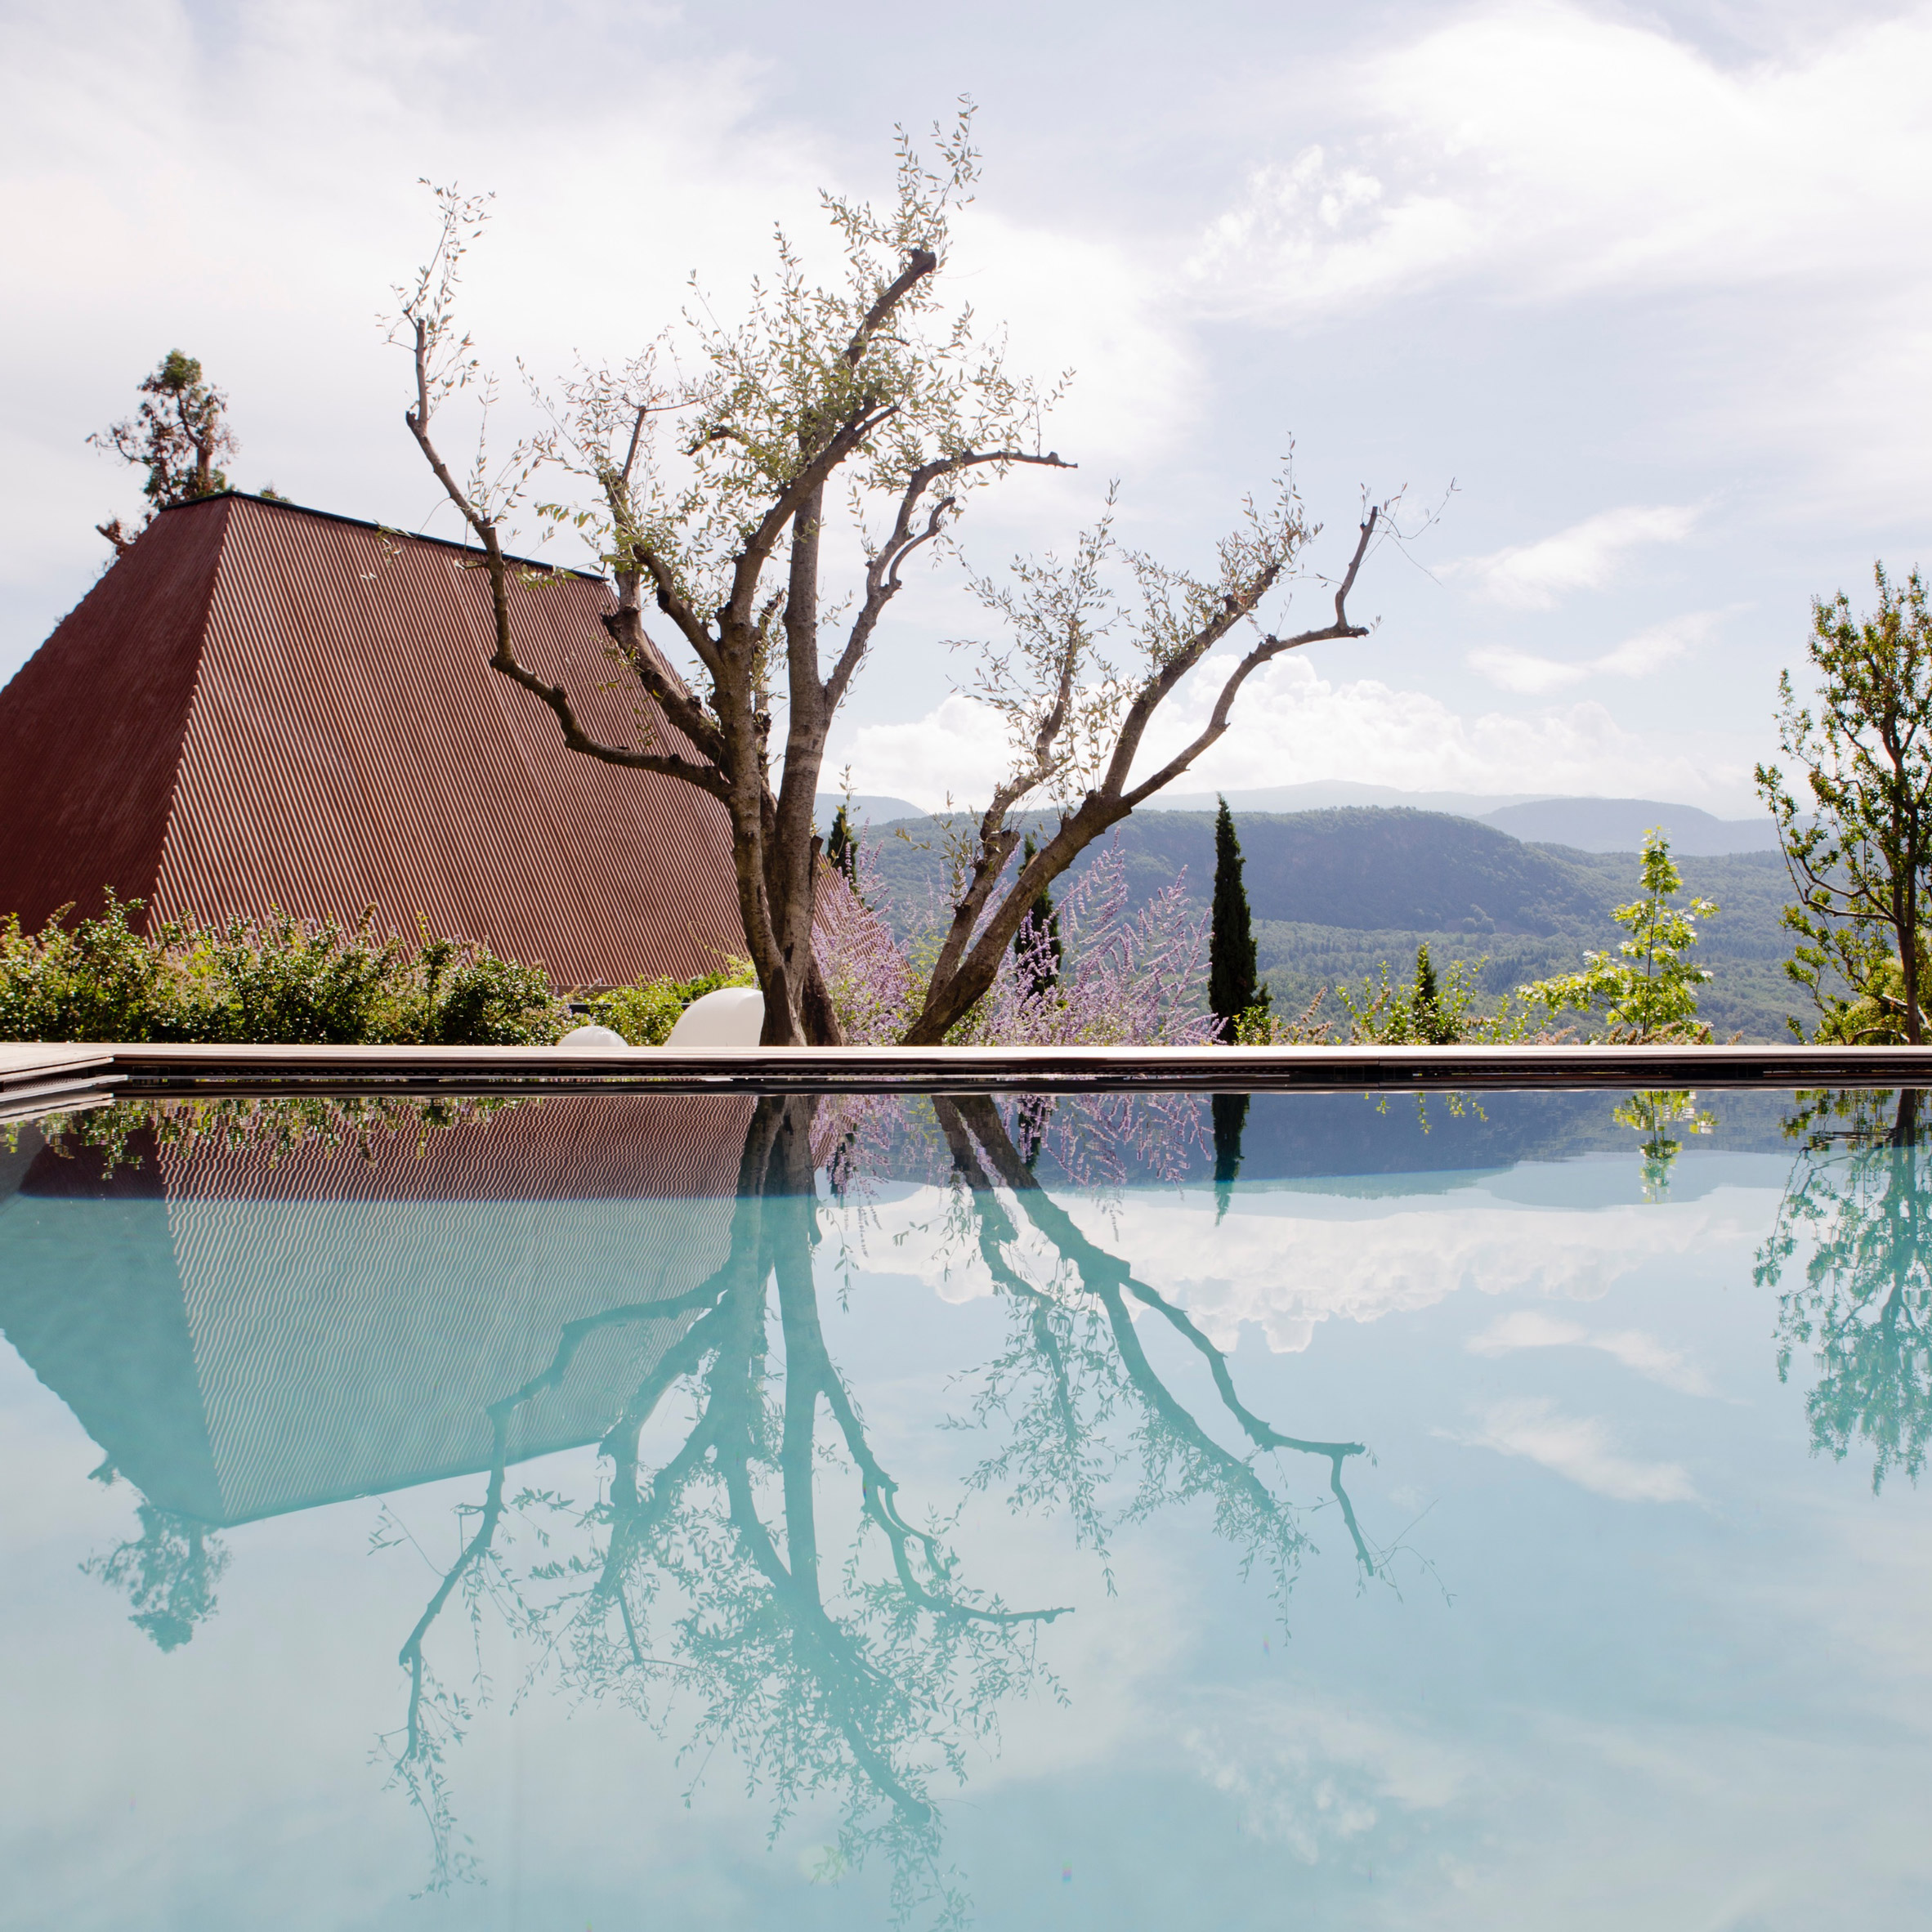 Urlaub Architektur's Holiday Architecture book roundup: Villa Baronessina by Walter Agonese and Manfred Alois Mayr